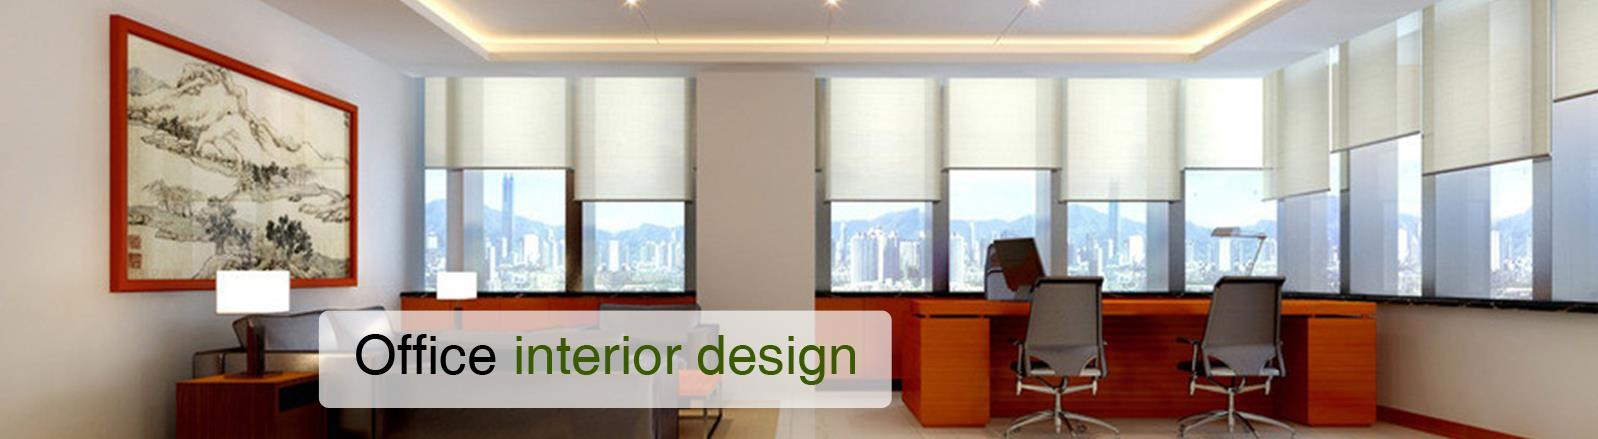 Interior design companies in ghaziabad for Architecture design for home in ghaziabad